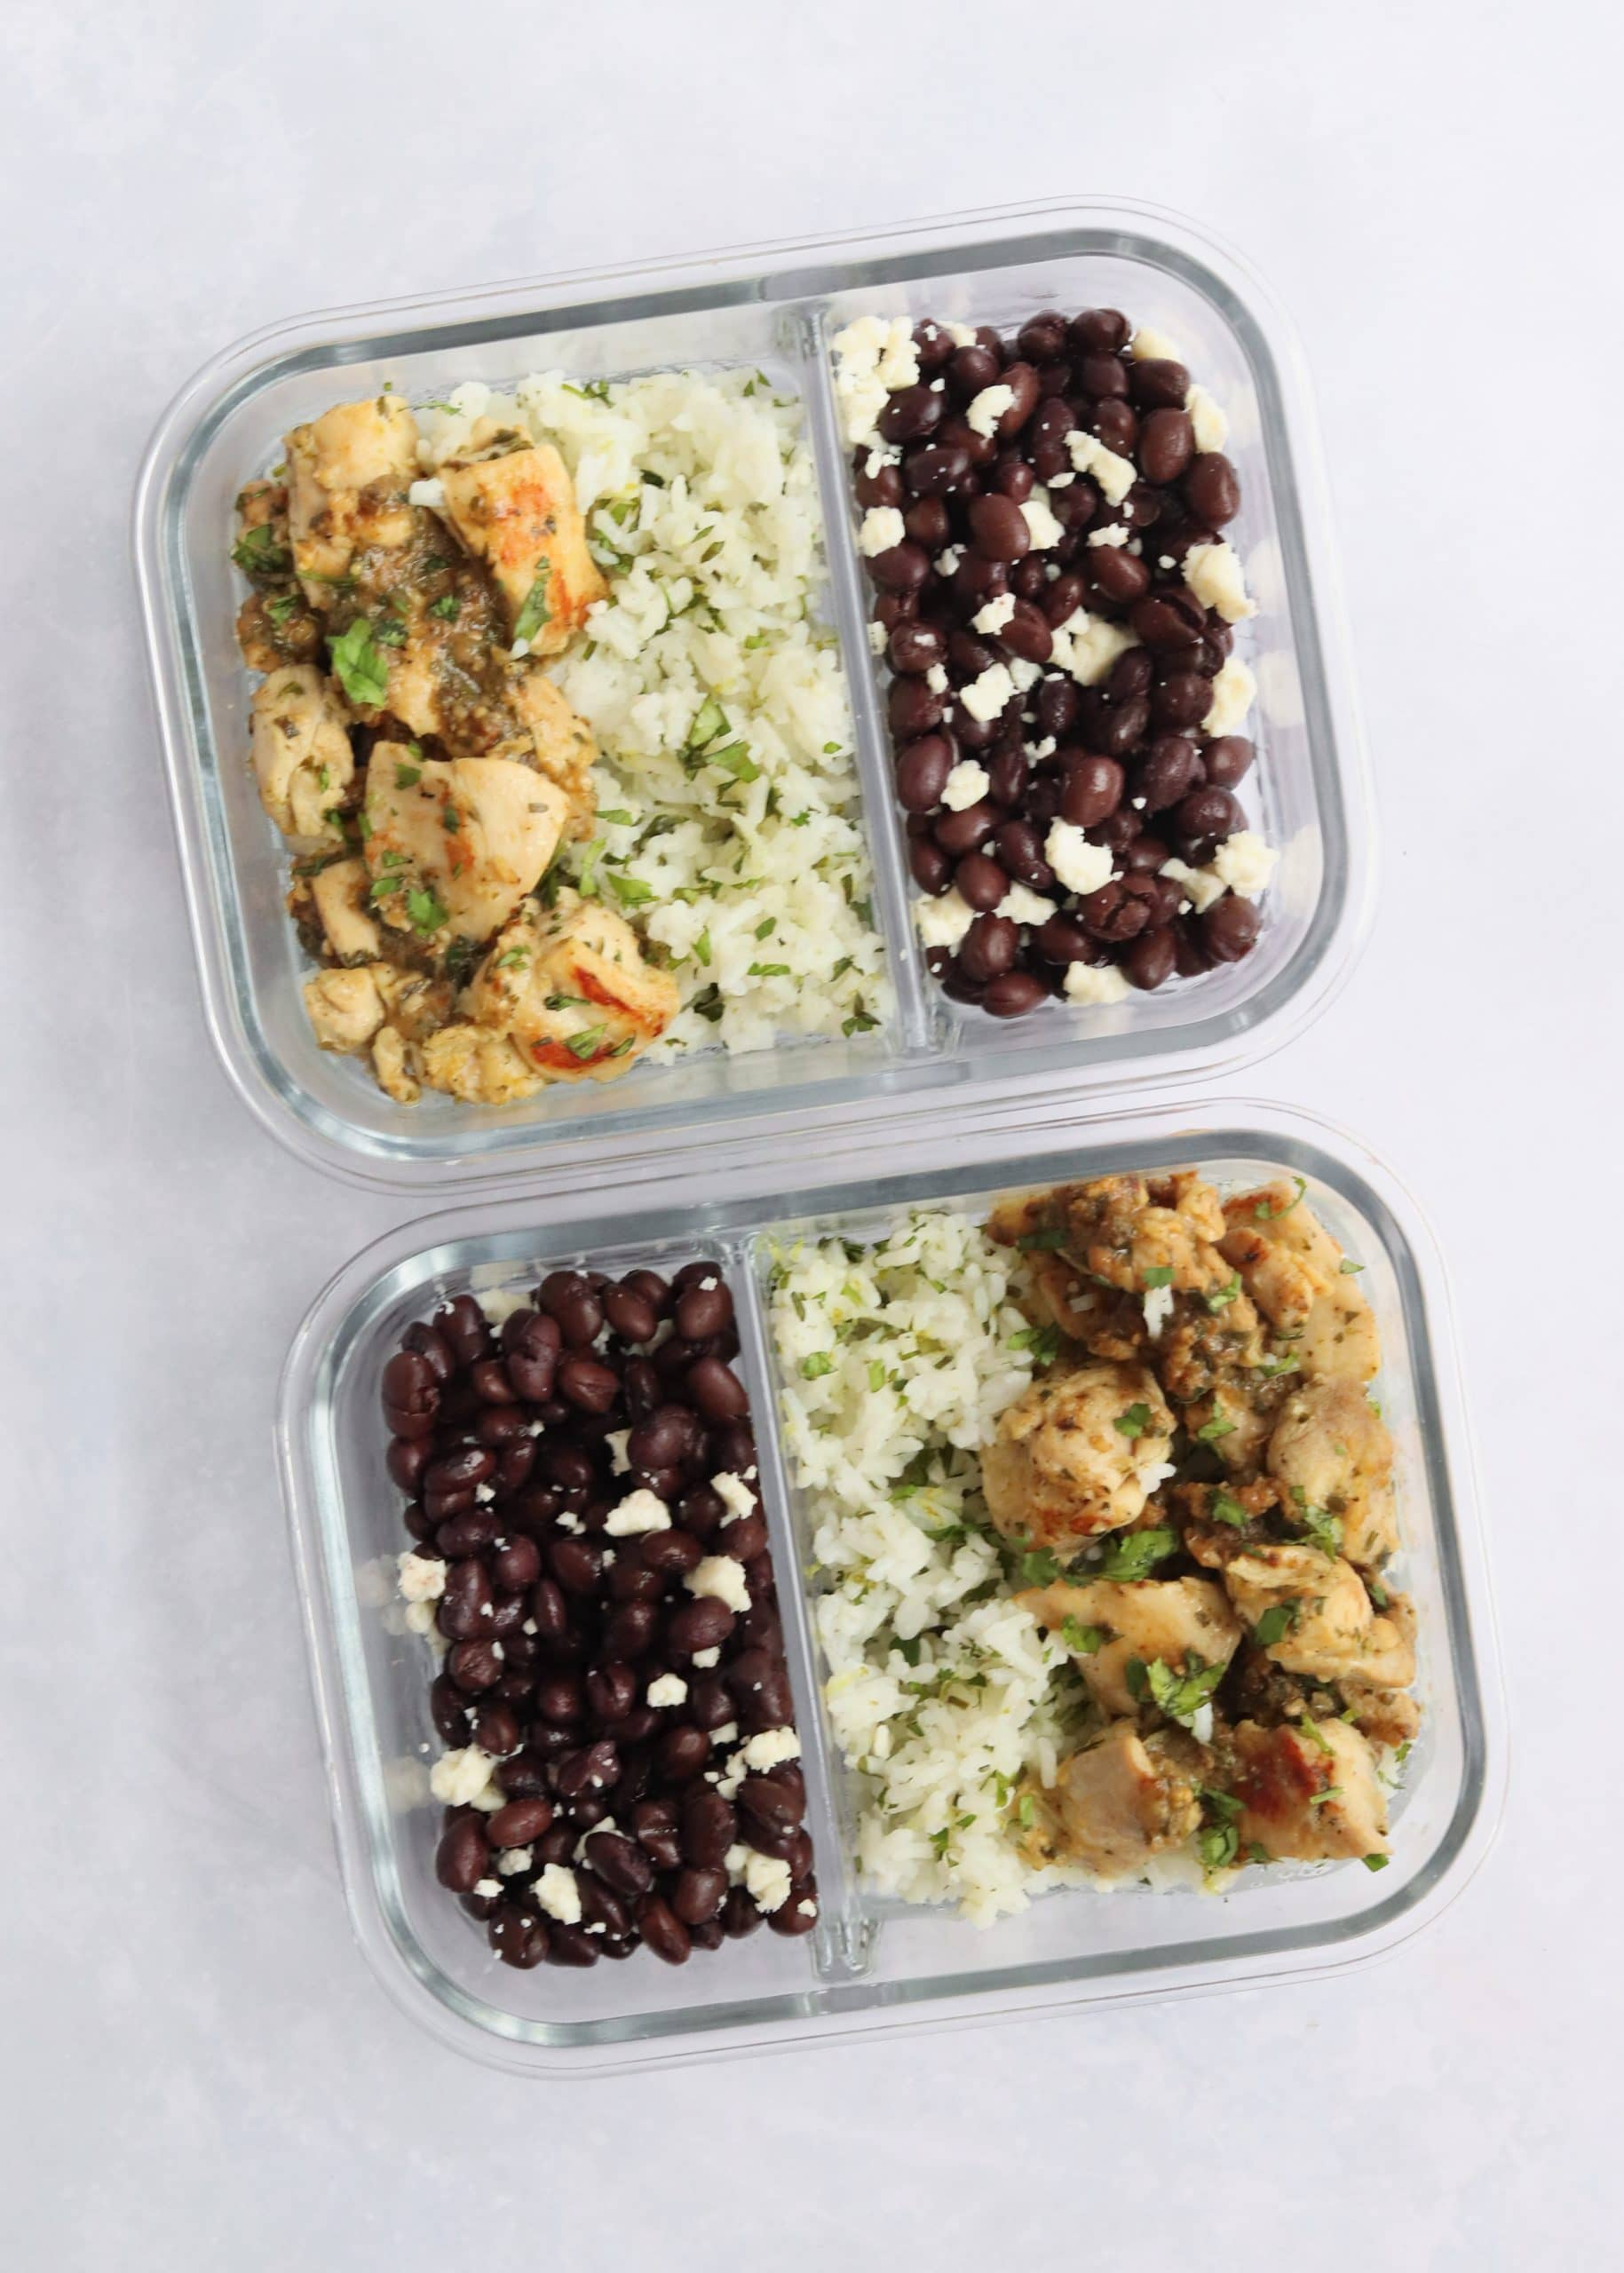 Salsa verde chicken meal prep with rice and beans